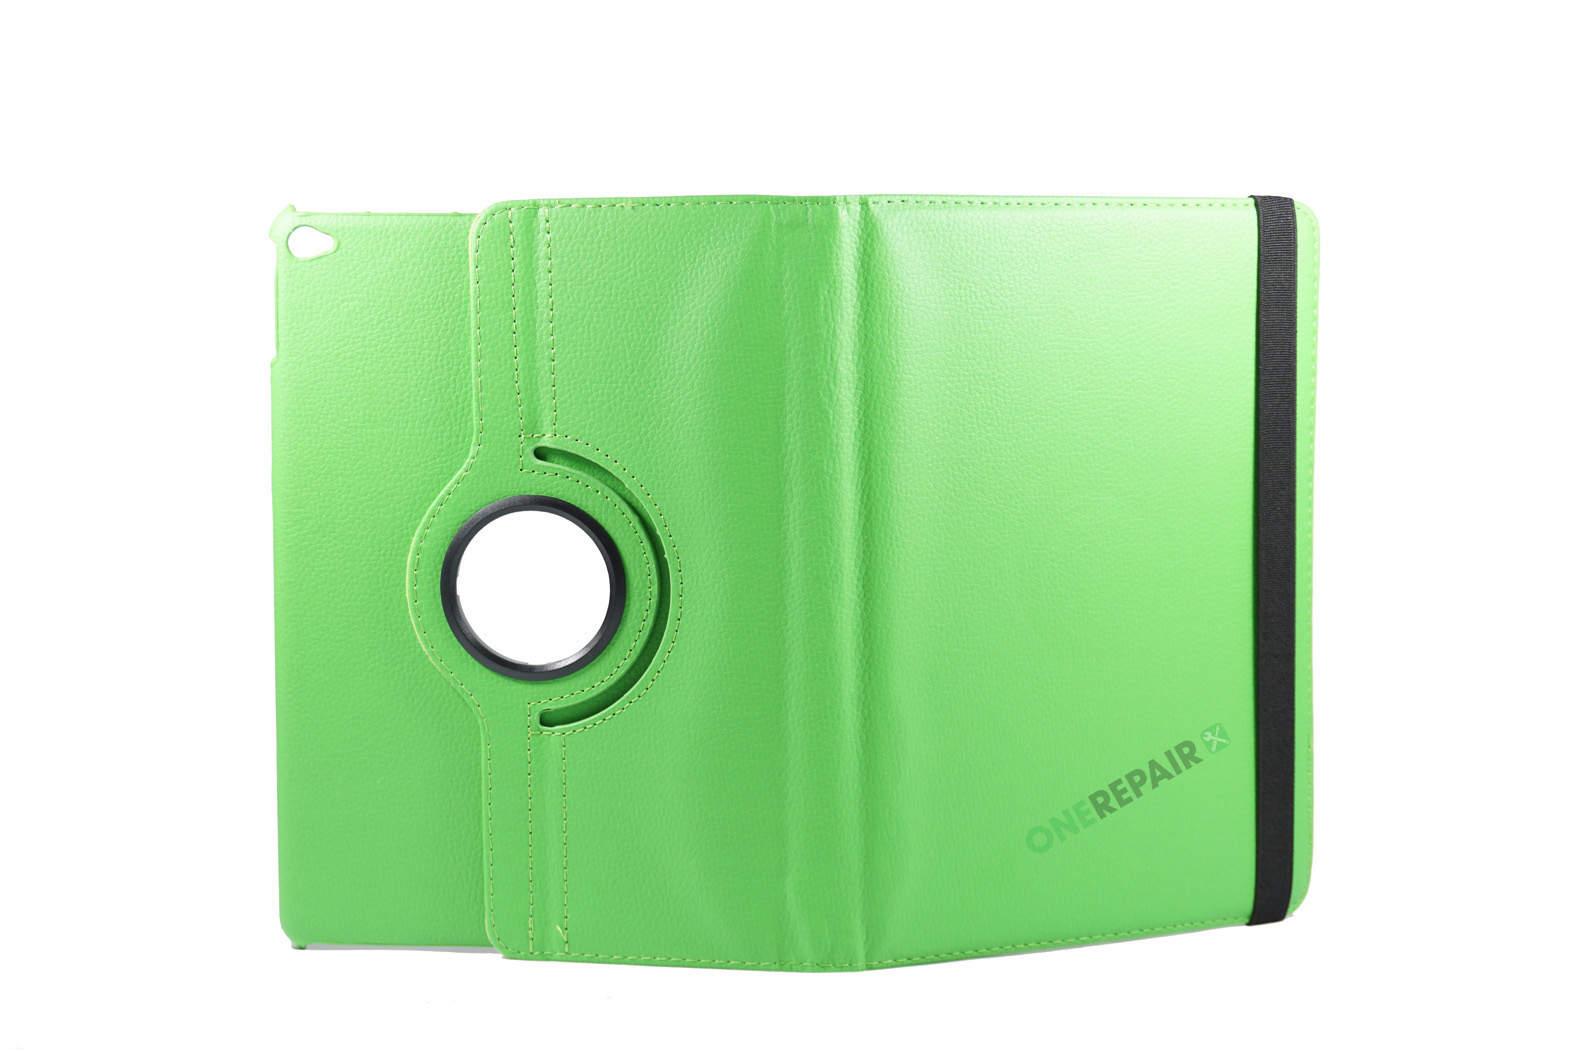 351018_iPad_Air_A1474_A1475_A1476_Flipcover_Cover_Groen_OneRepair_00004